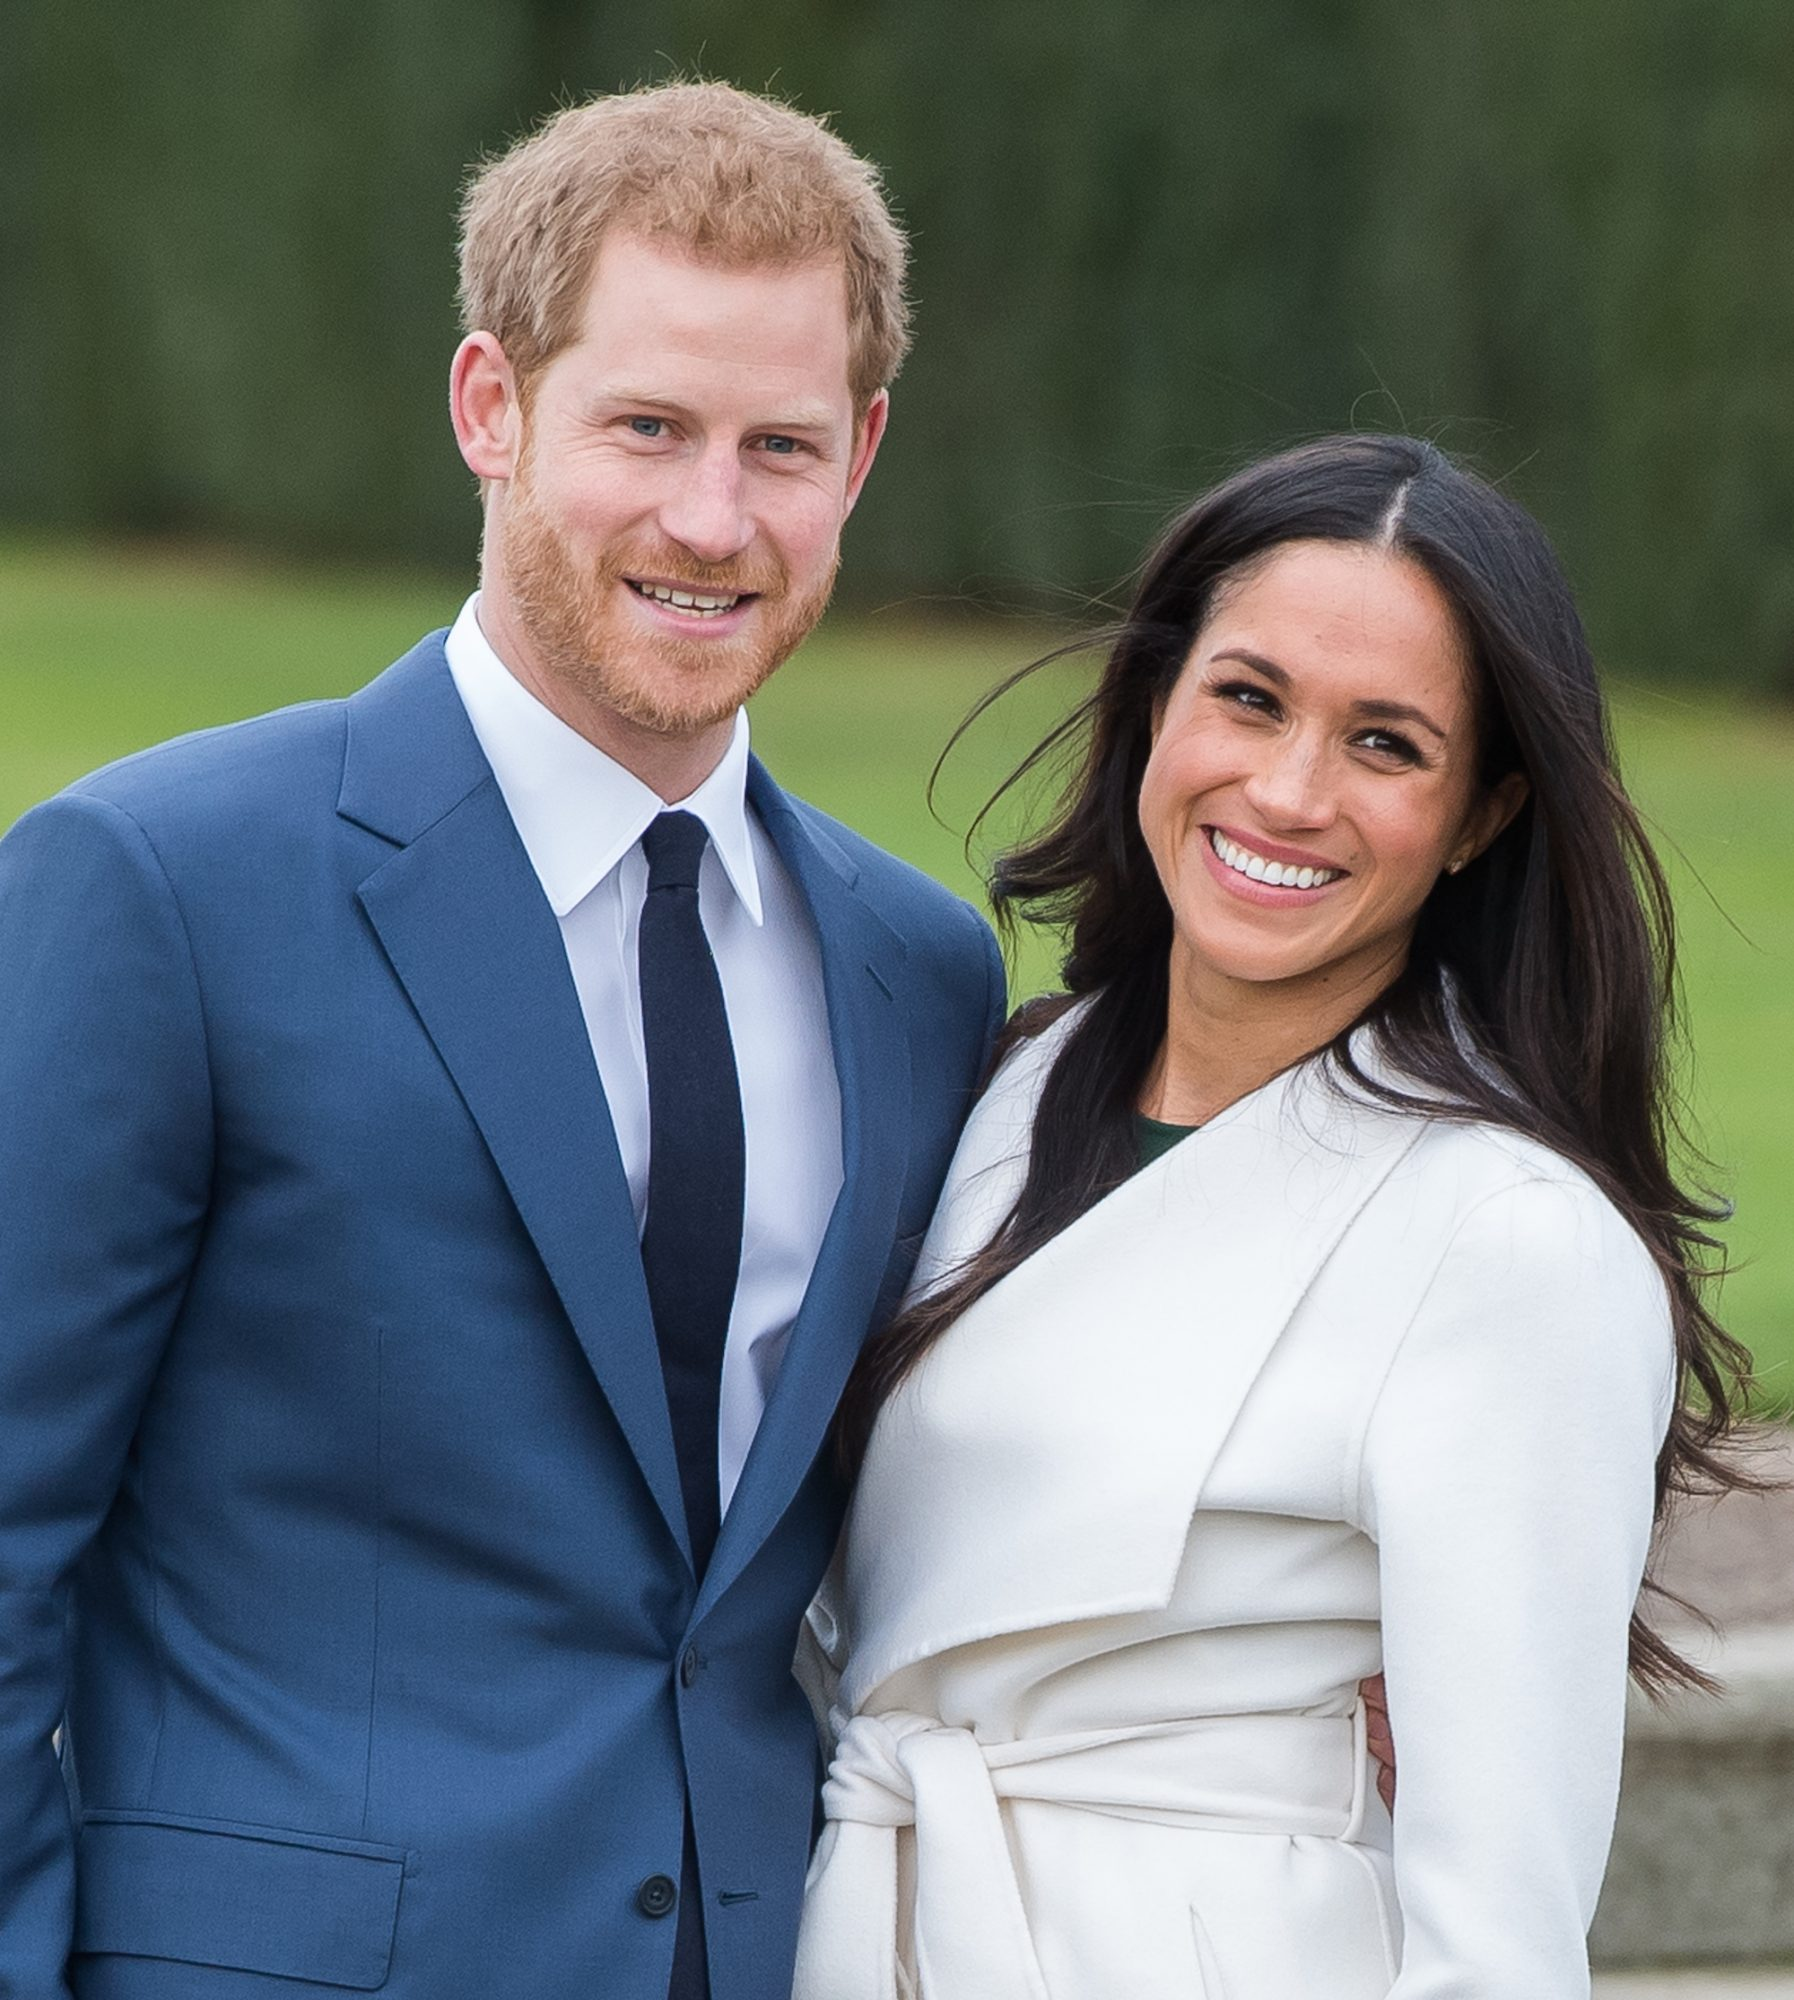 Here Are the Wedding Gifts World Leaders Have Promised Prince Harry and Meghan Markle